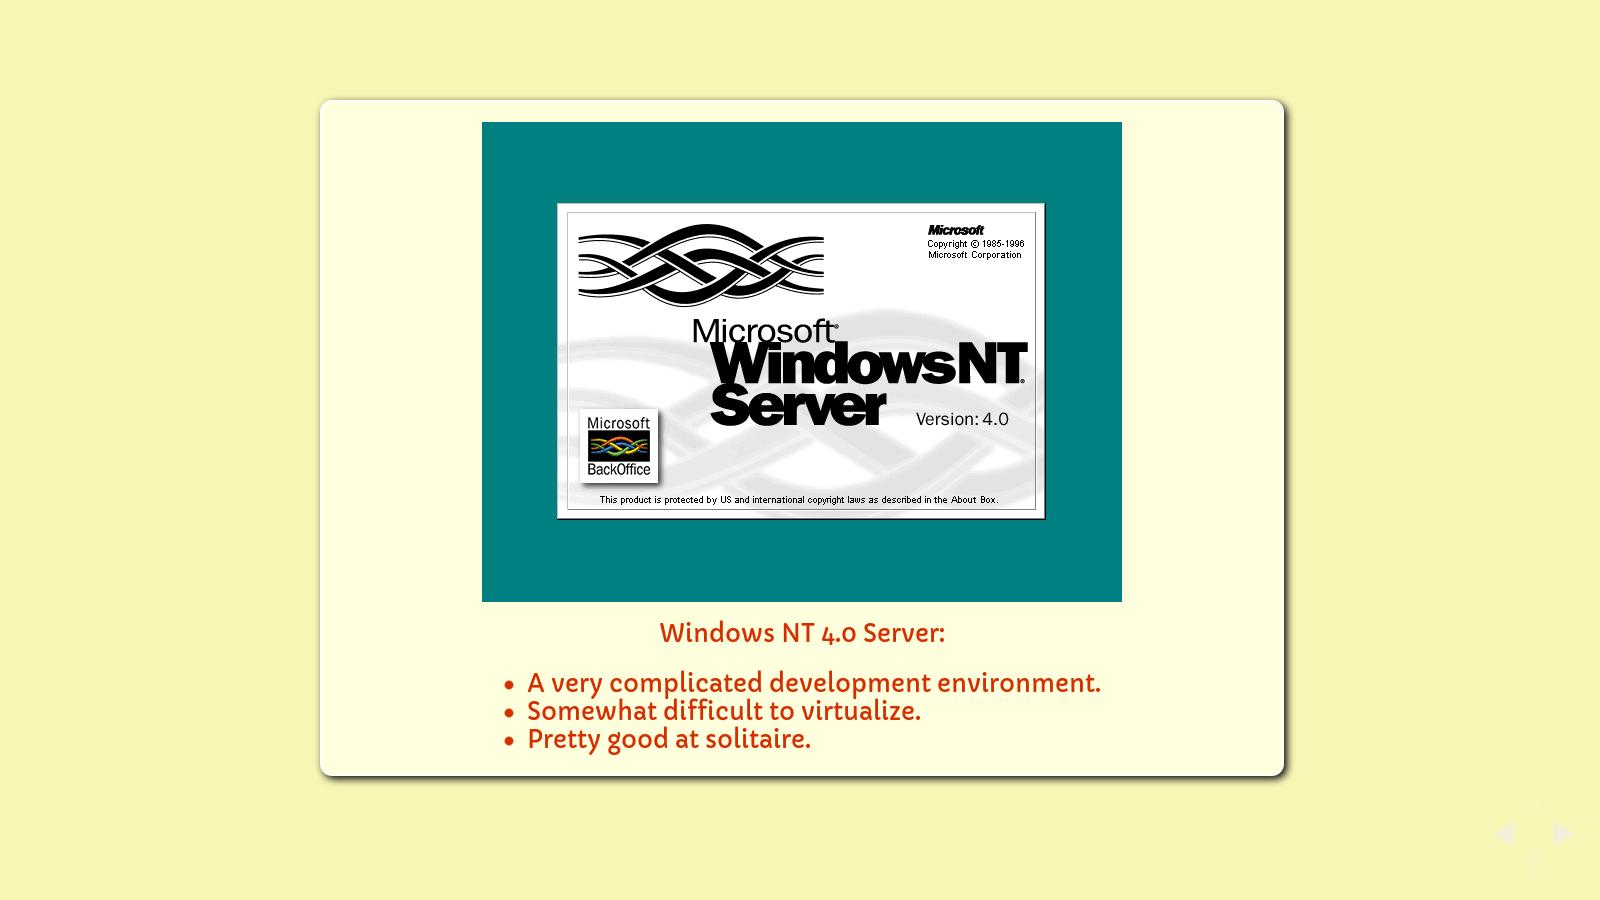 Slide: Windows NT 4.0 Server. A very complicated development environment. Not too terribly hard to virtualize. Pretty good at Tic Tac Toe.